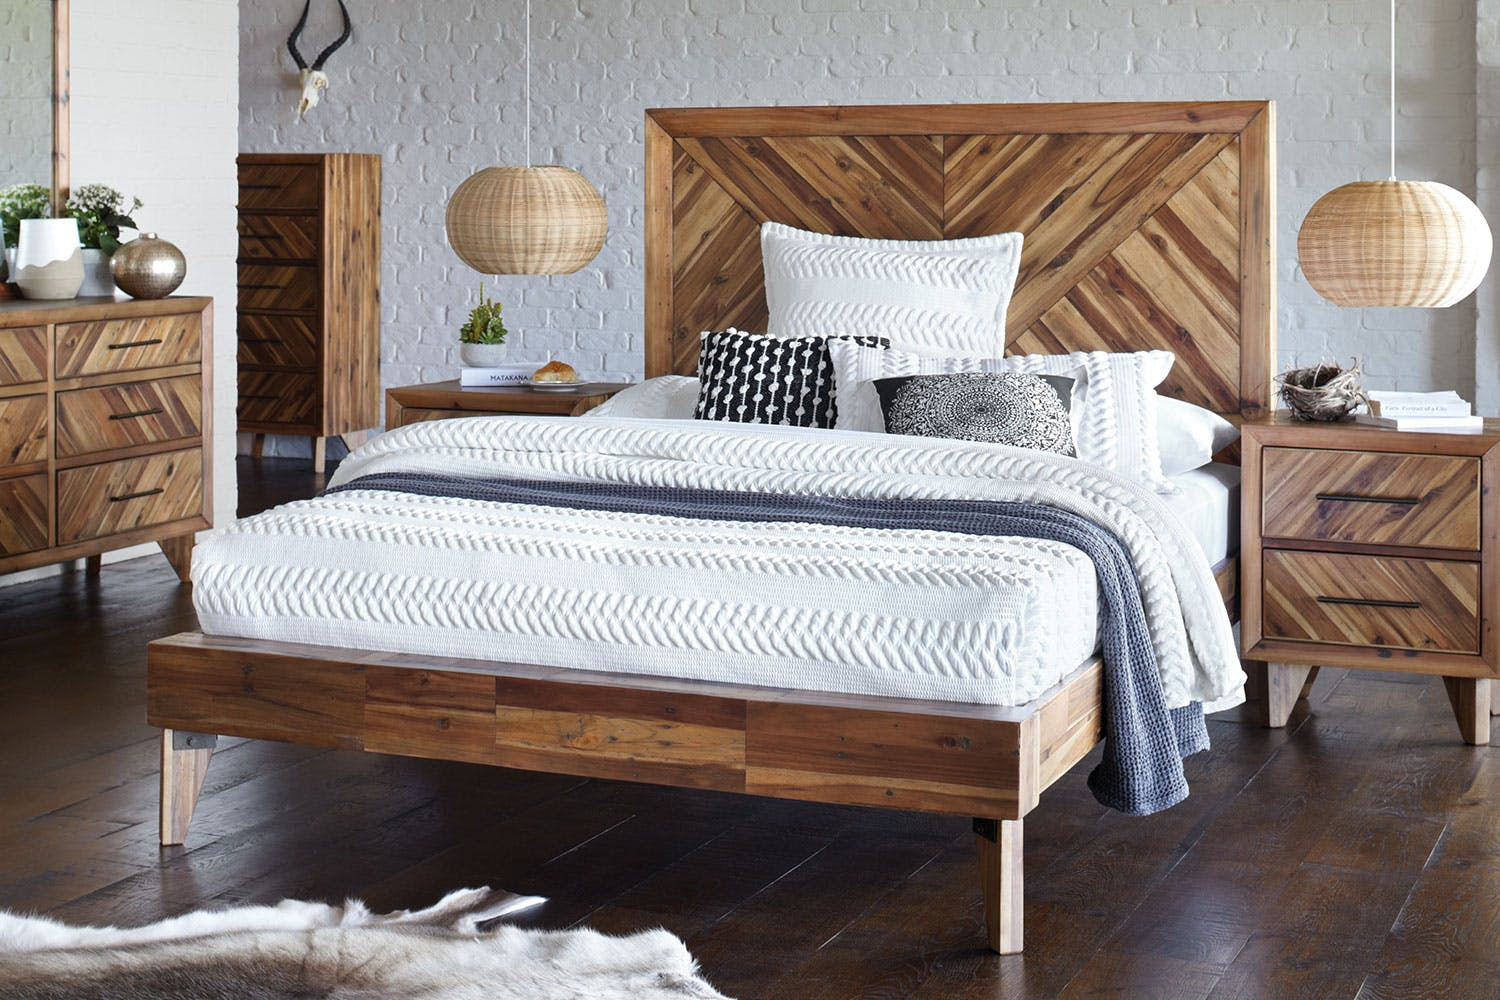 Parquet queen bed frame by synargy harvey norman new zealand - Harvey norman bedroom sets ...